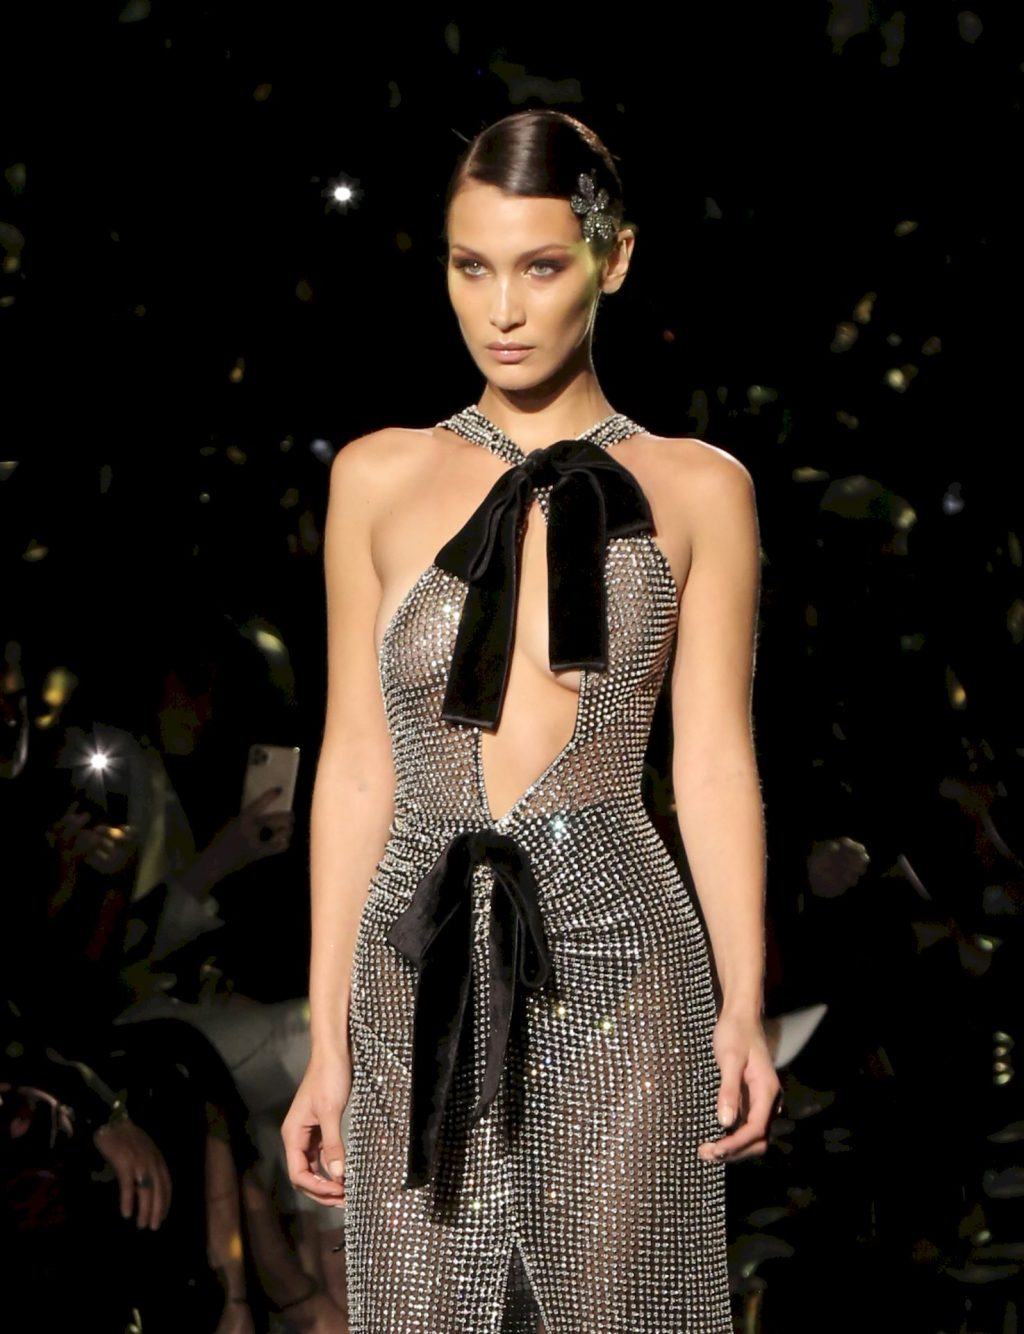 Bella Hadid Displays Her Tits at Tom Ford Fall/Winter 2020/2021 Show (18 Photos + Video)